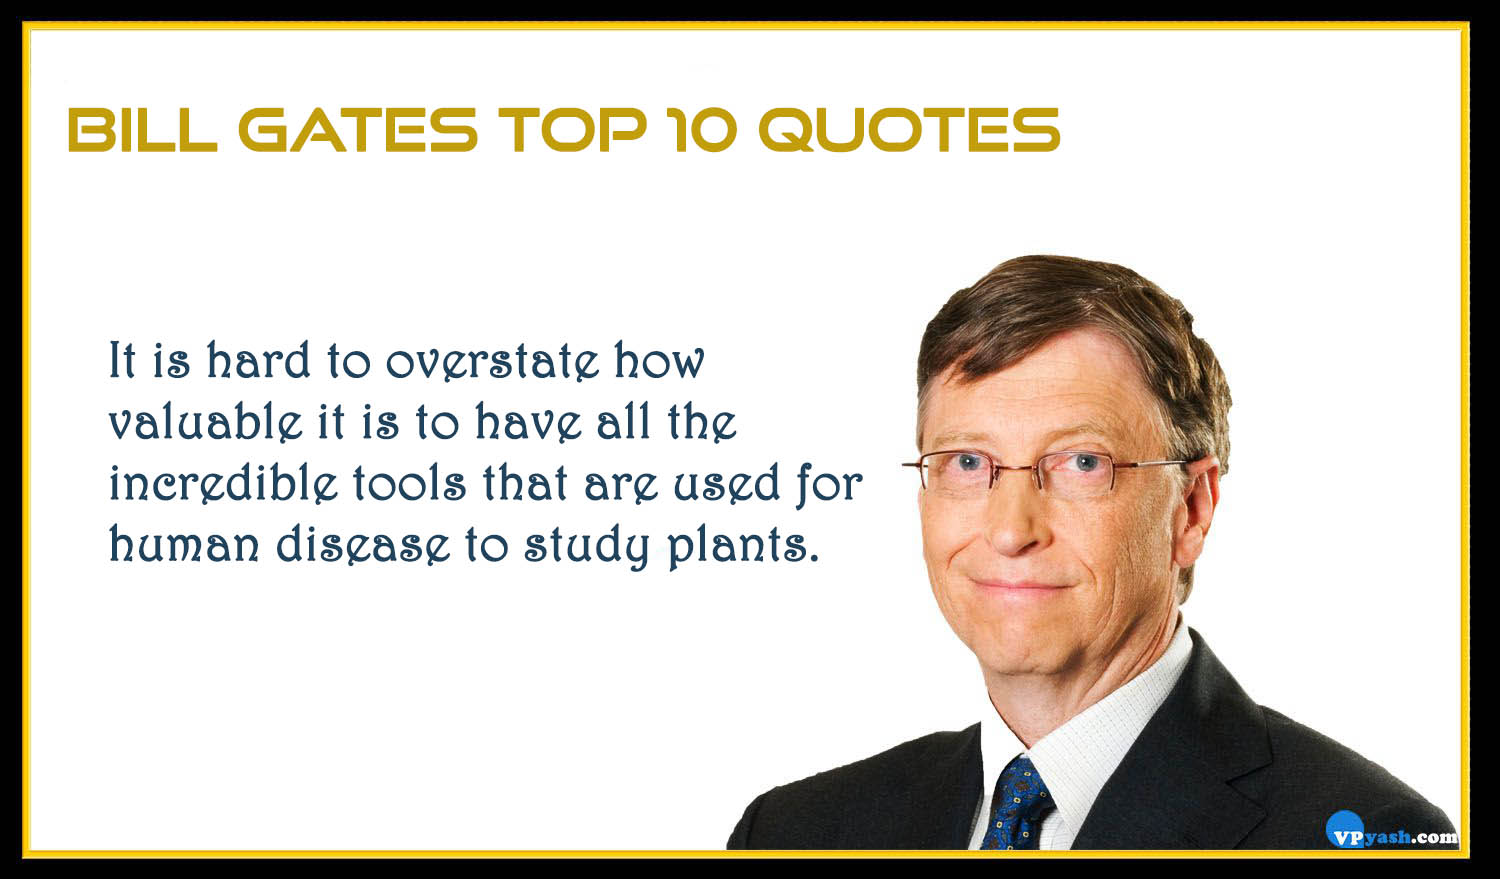 personality traits of bill gates The bill & melinda gates foundation (b&mgf or the gates foundation) is the largest transparently operated private foundation in the world, founded by bill and melinda gates it is driven by the interests and passions of the gates family.